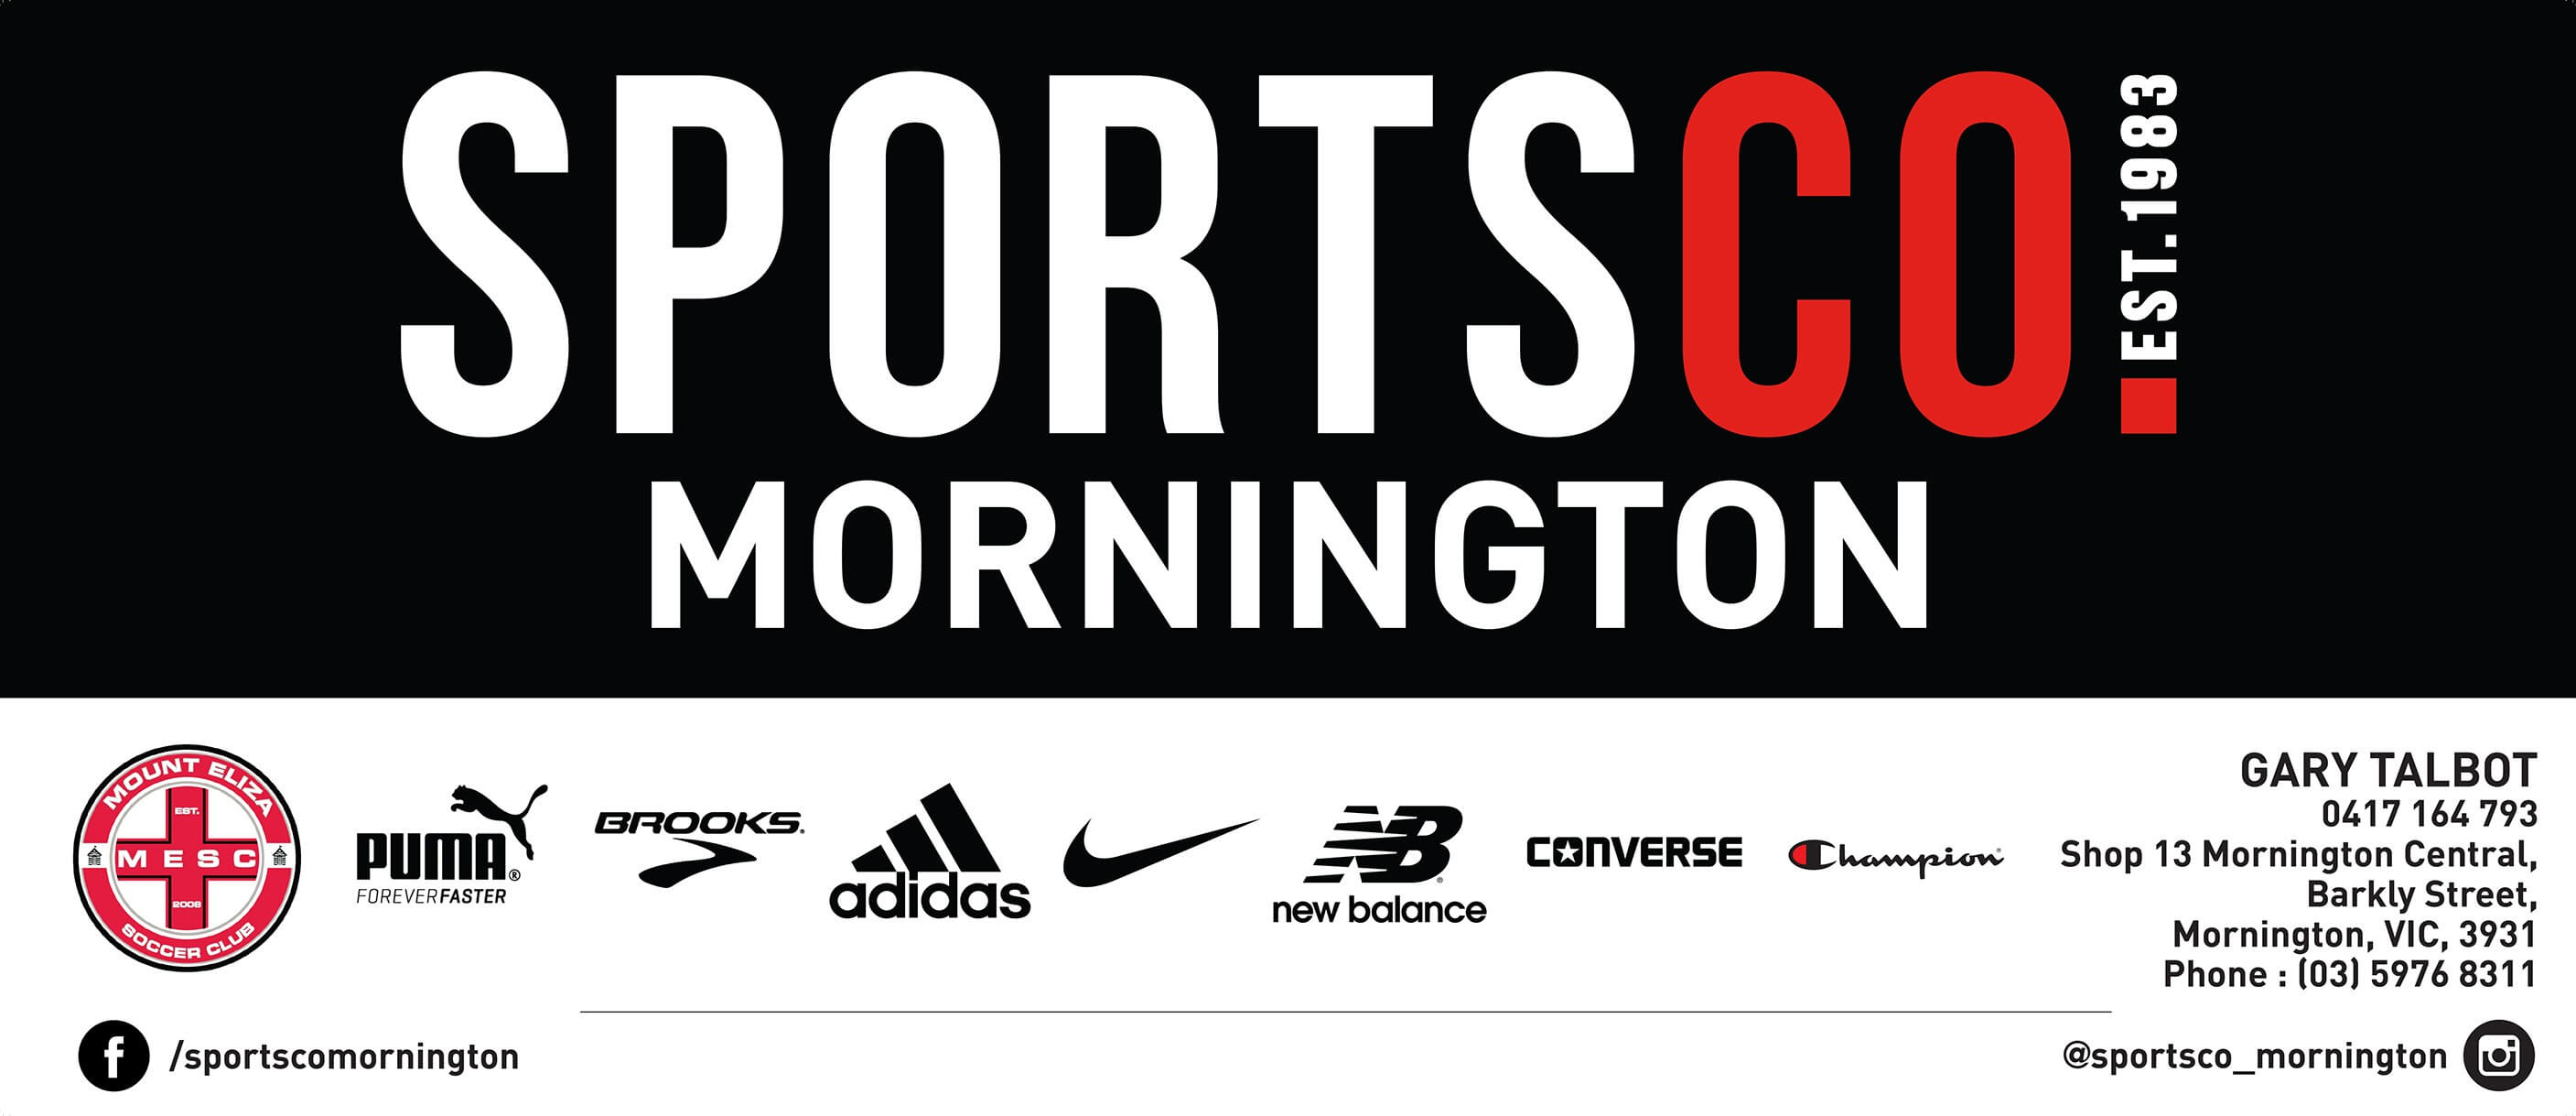 Sportsco Mornington